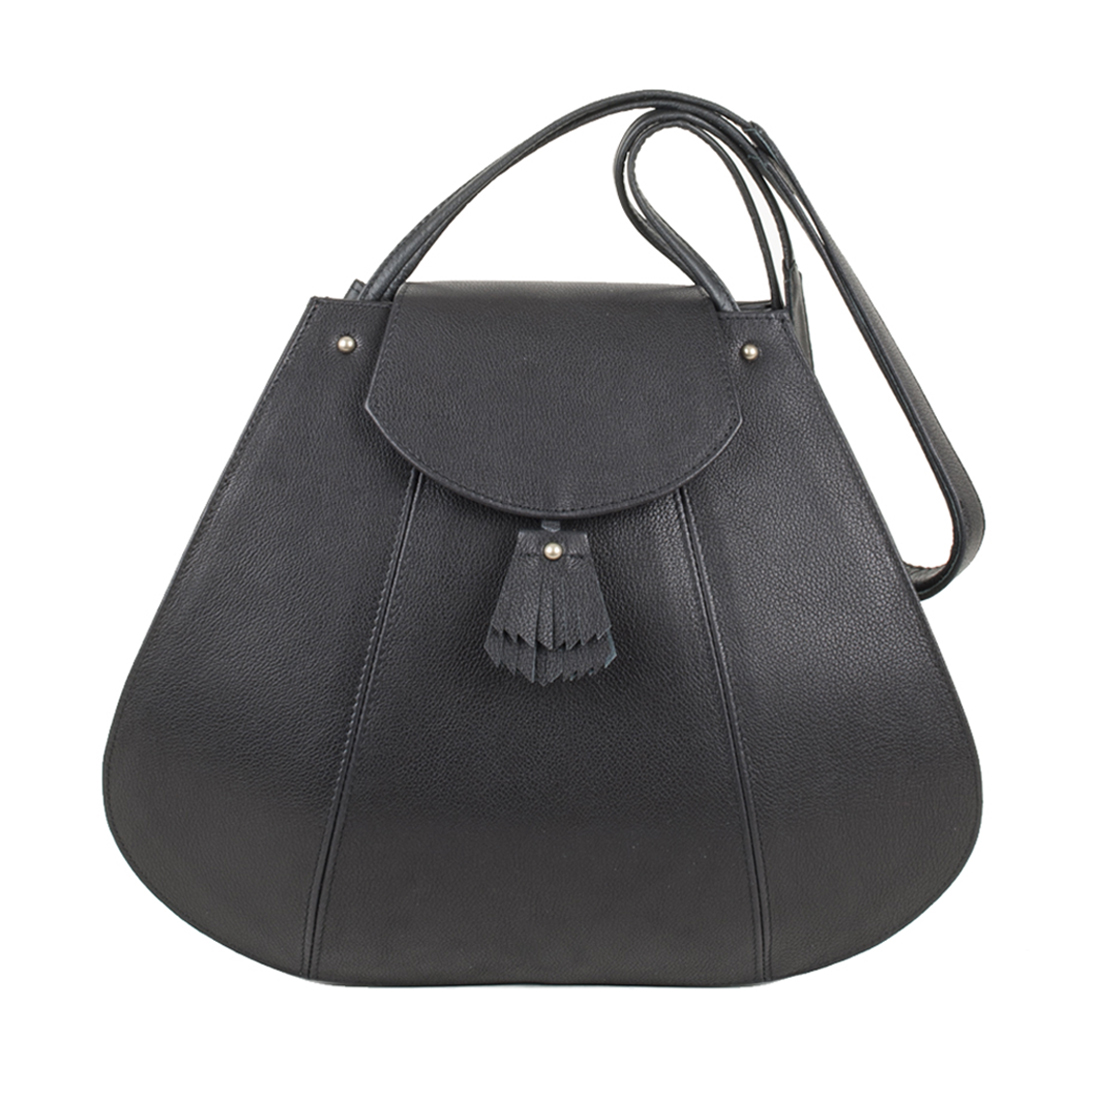 Frances Black Leather Shoulder Bag